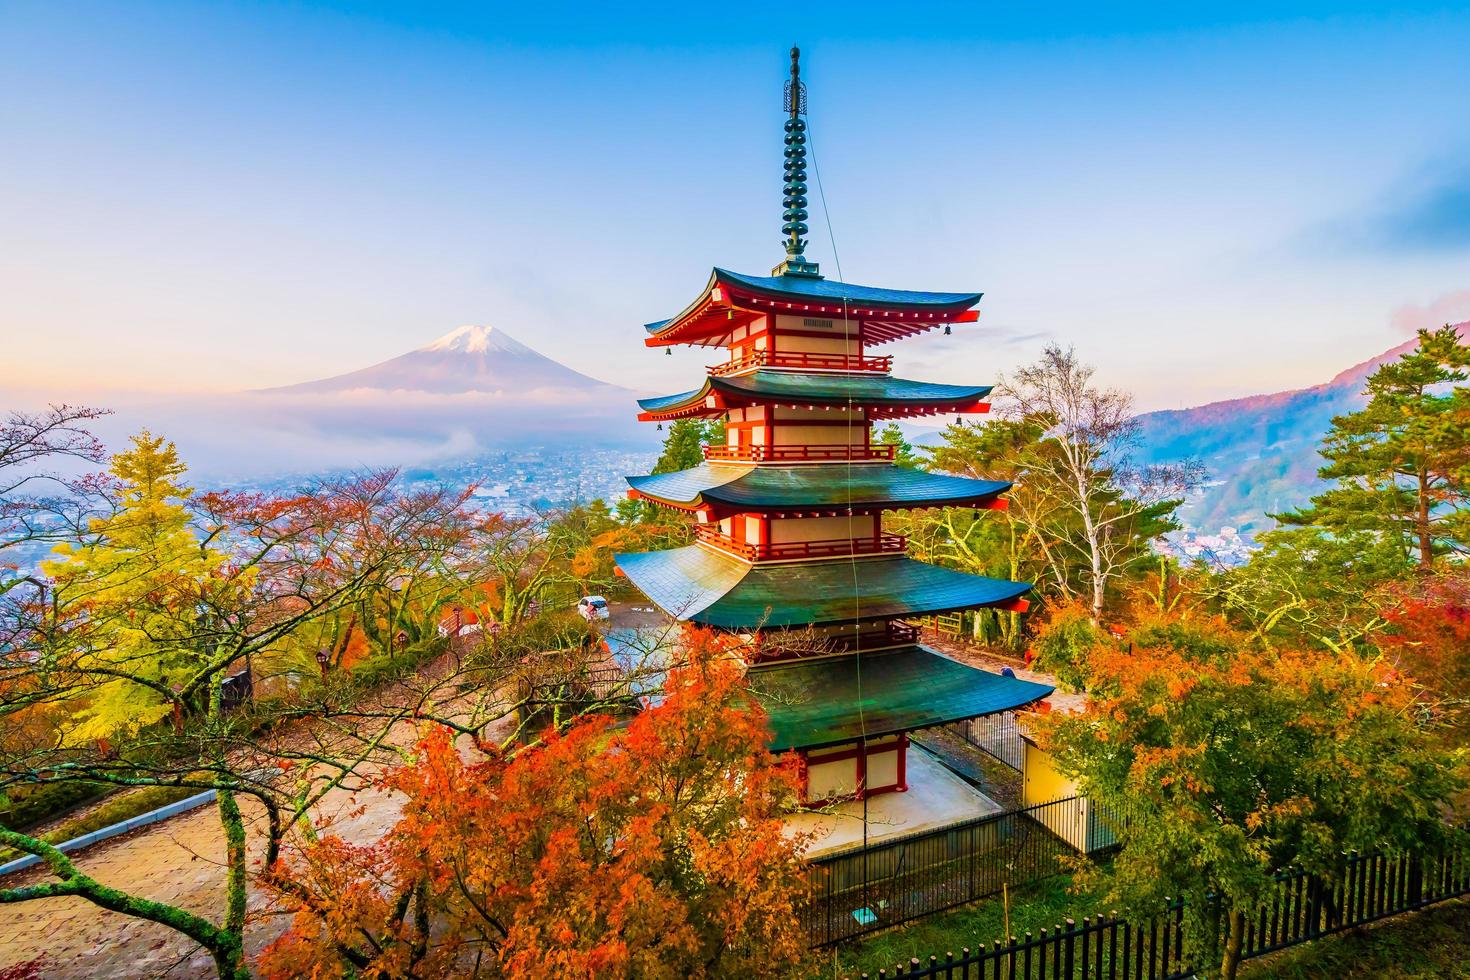 Mt. Fuji with Chureito pagoda in Japan in autumn photo